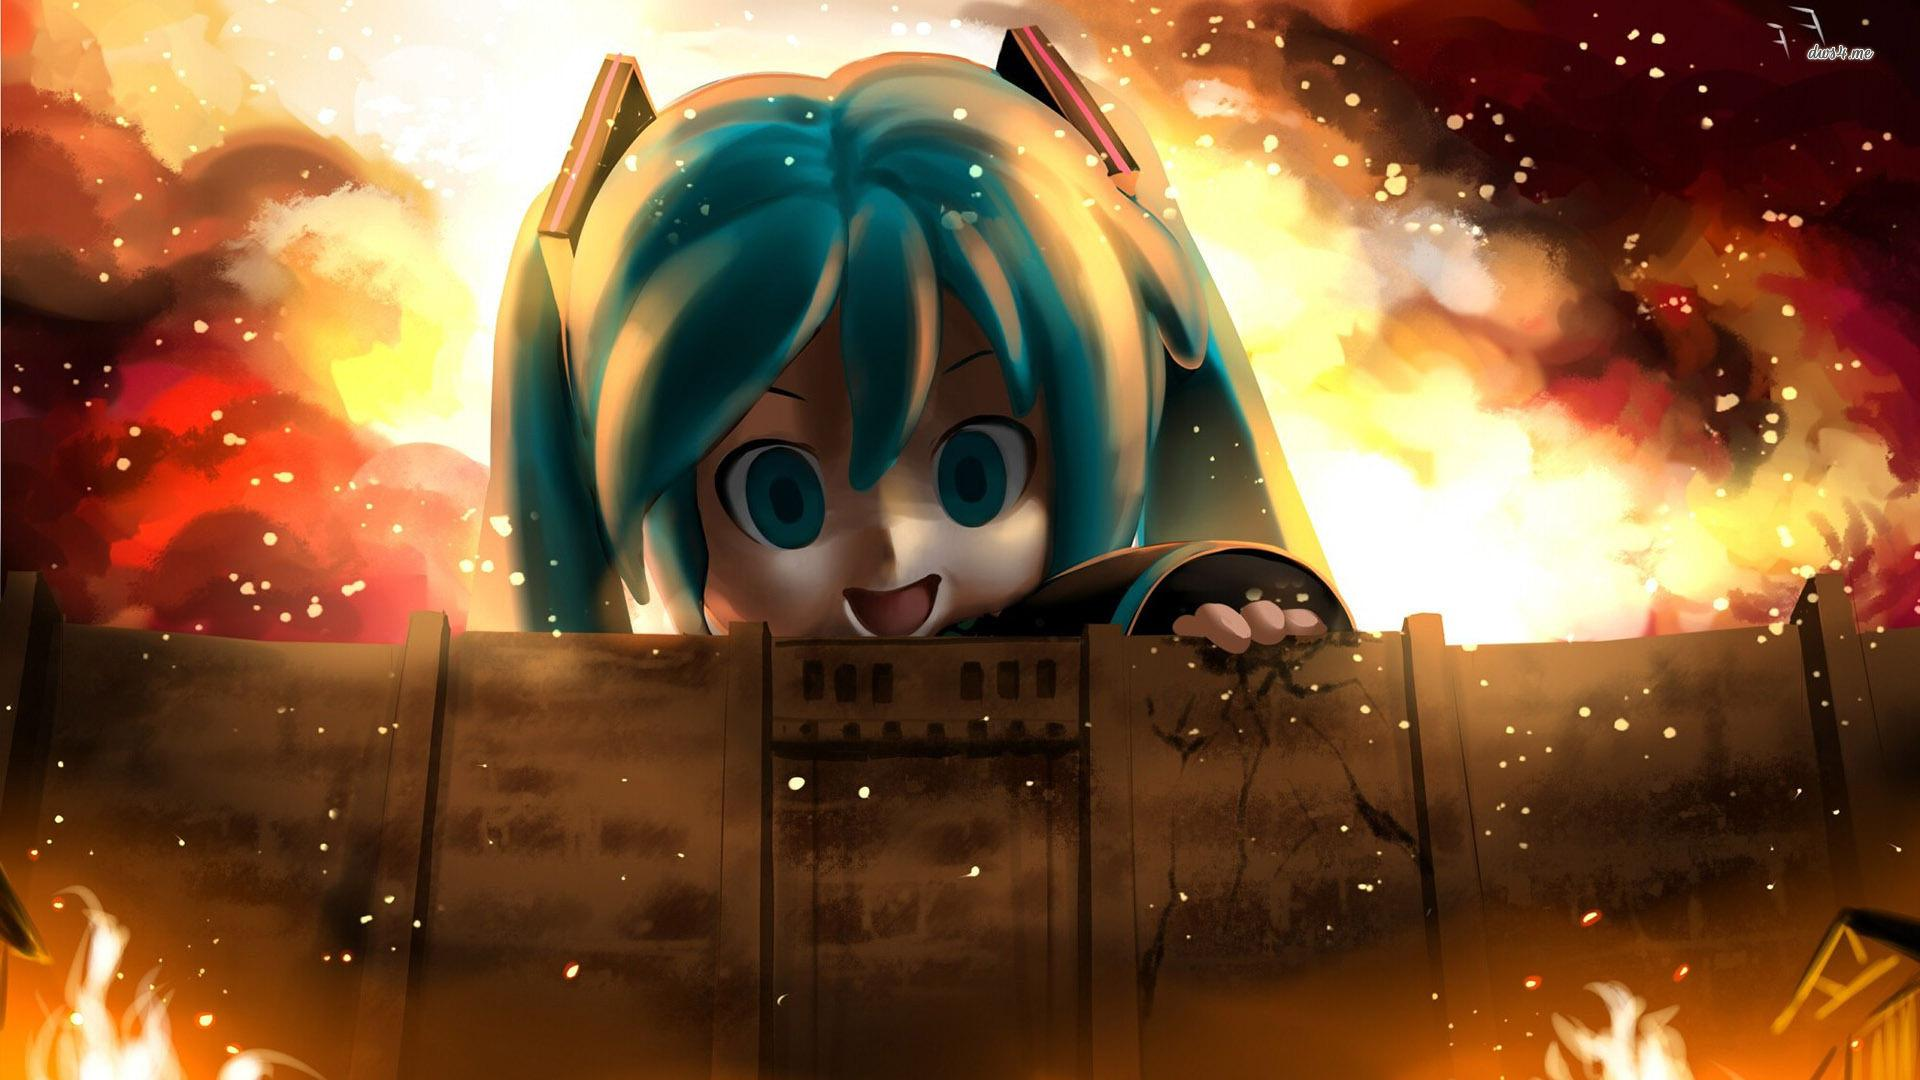 Attack On Titan Chibi Wallpapers Hd Wallpaper Cave